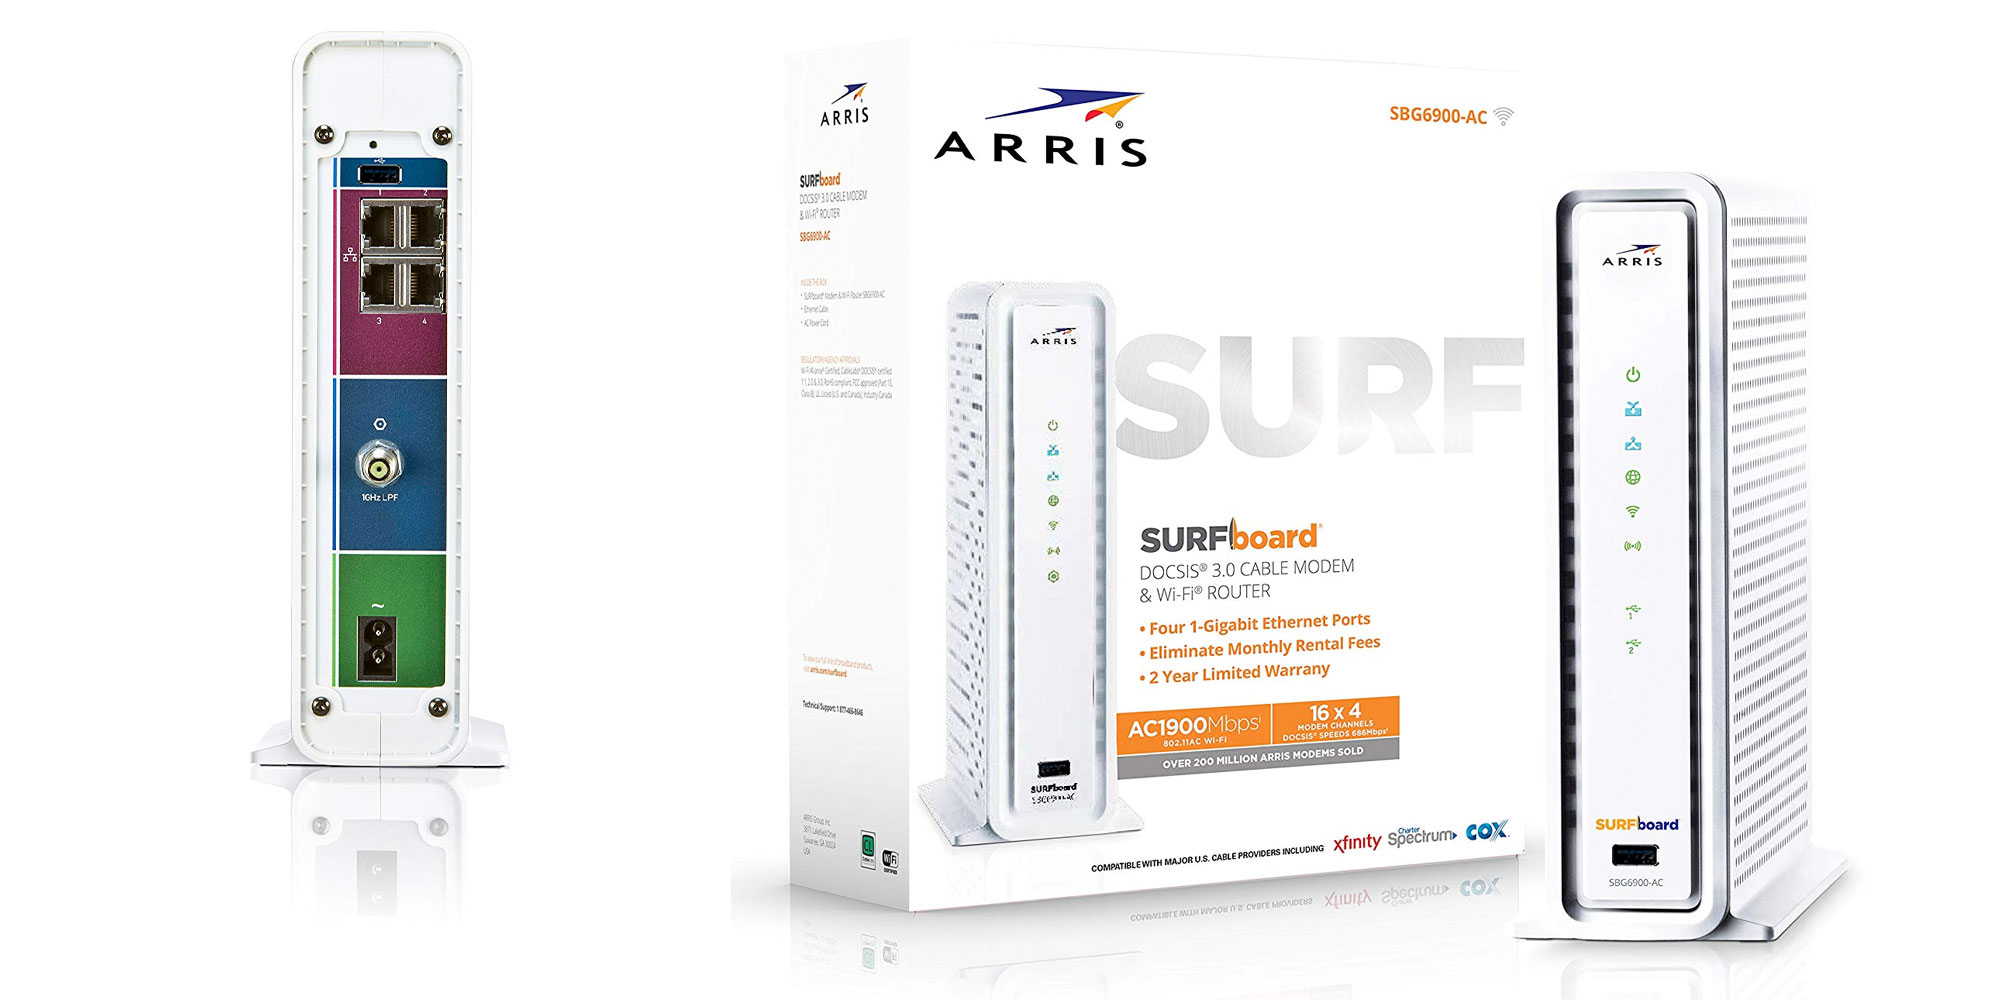 Take 25% off this ARRIS DOCSIS 3 0 modem + 802 11ac router